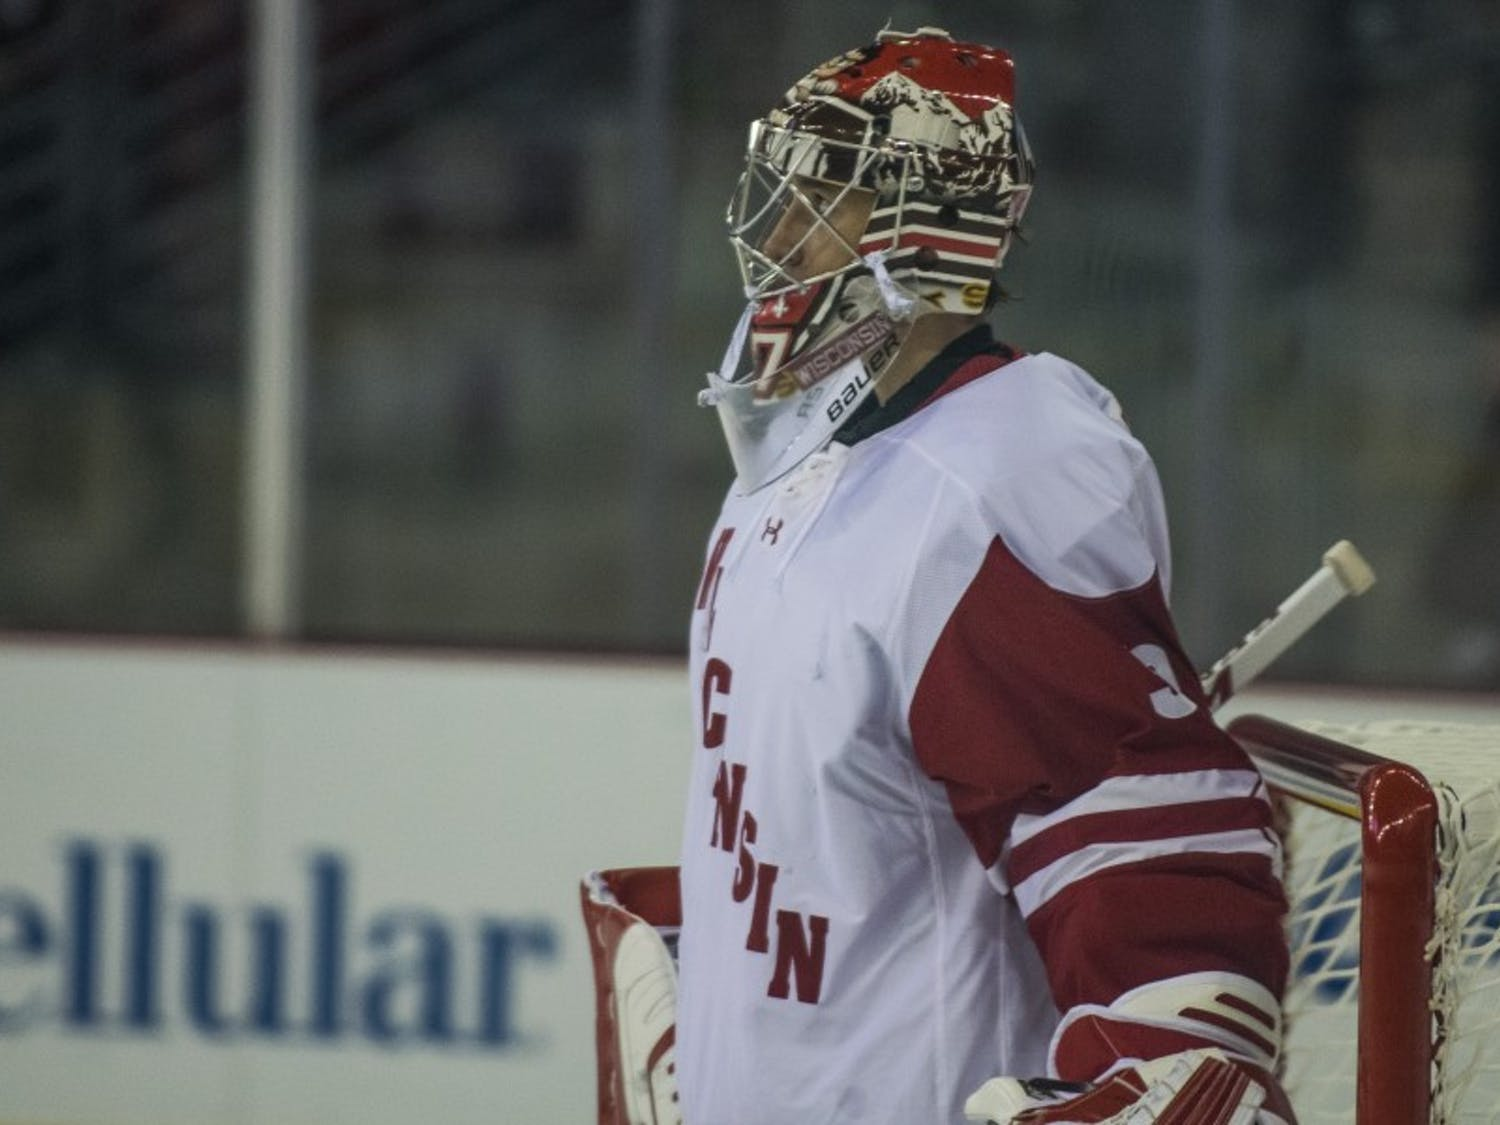 Kyle Hayton played well, but the Badgers couldn't provide enough offensive support in 4-2 loss.